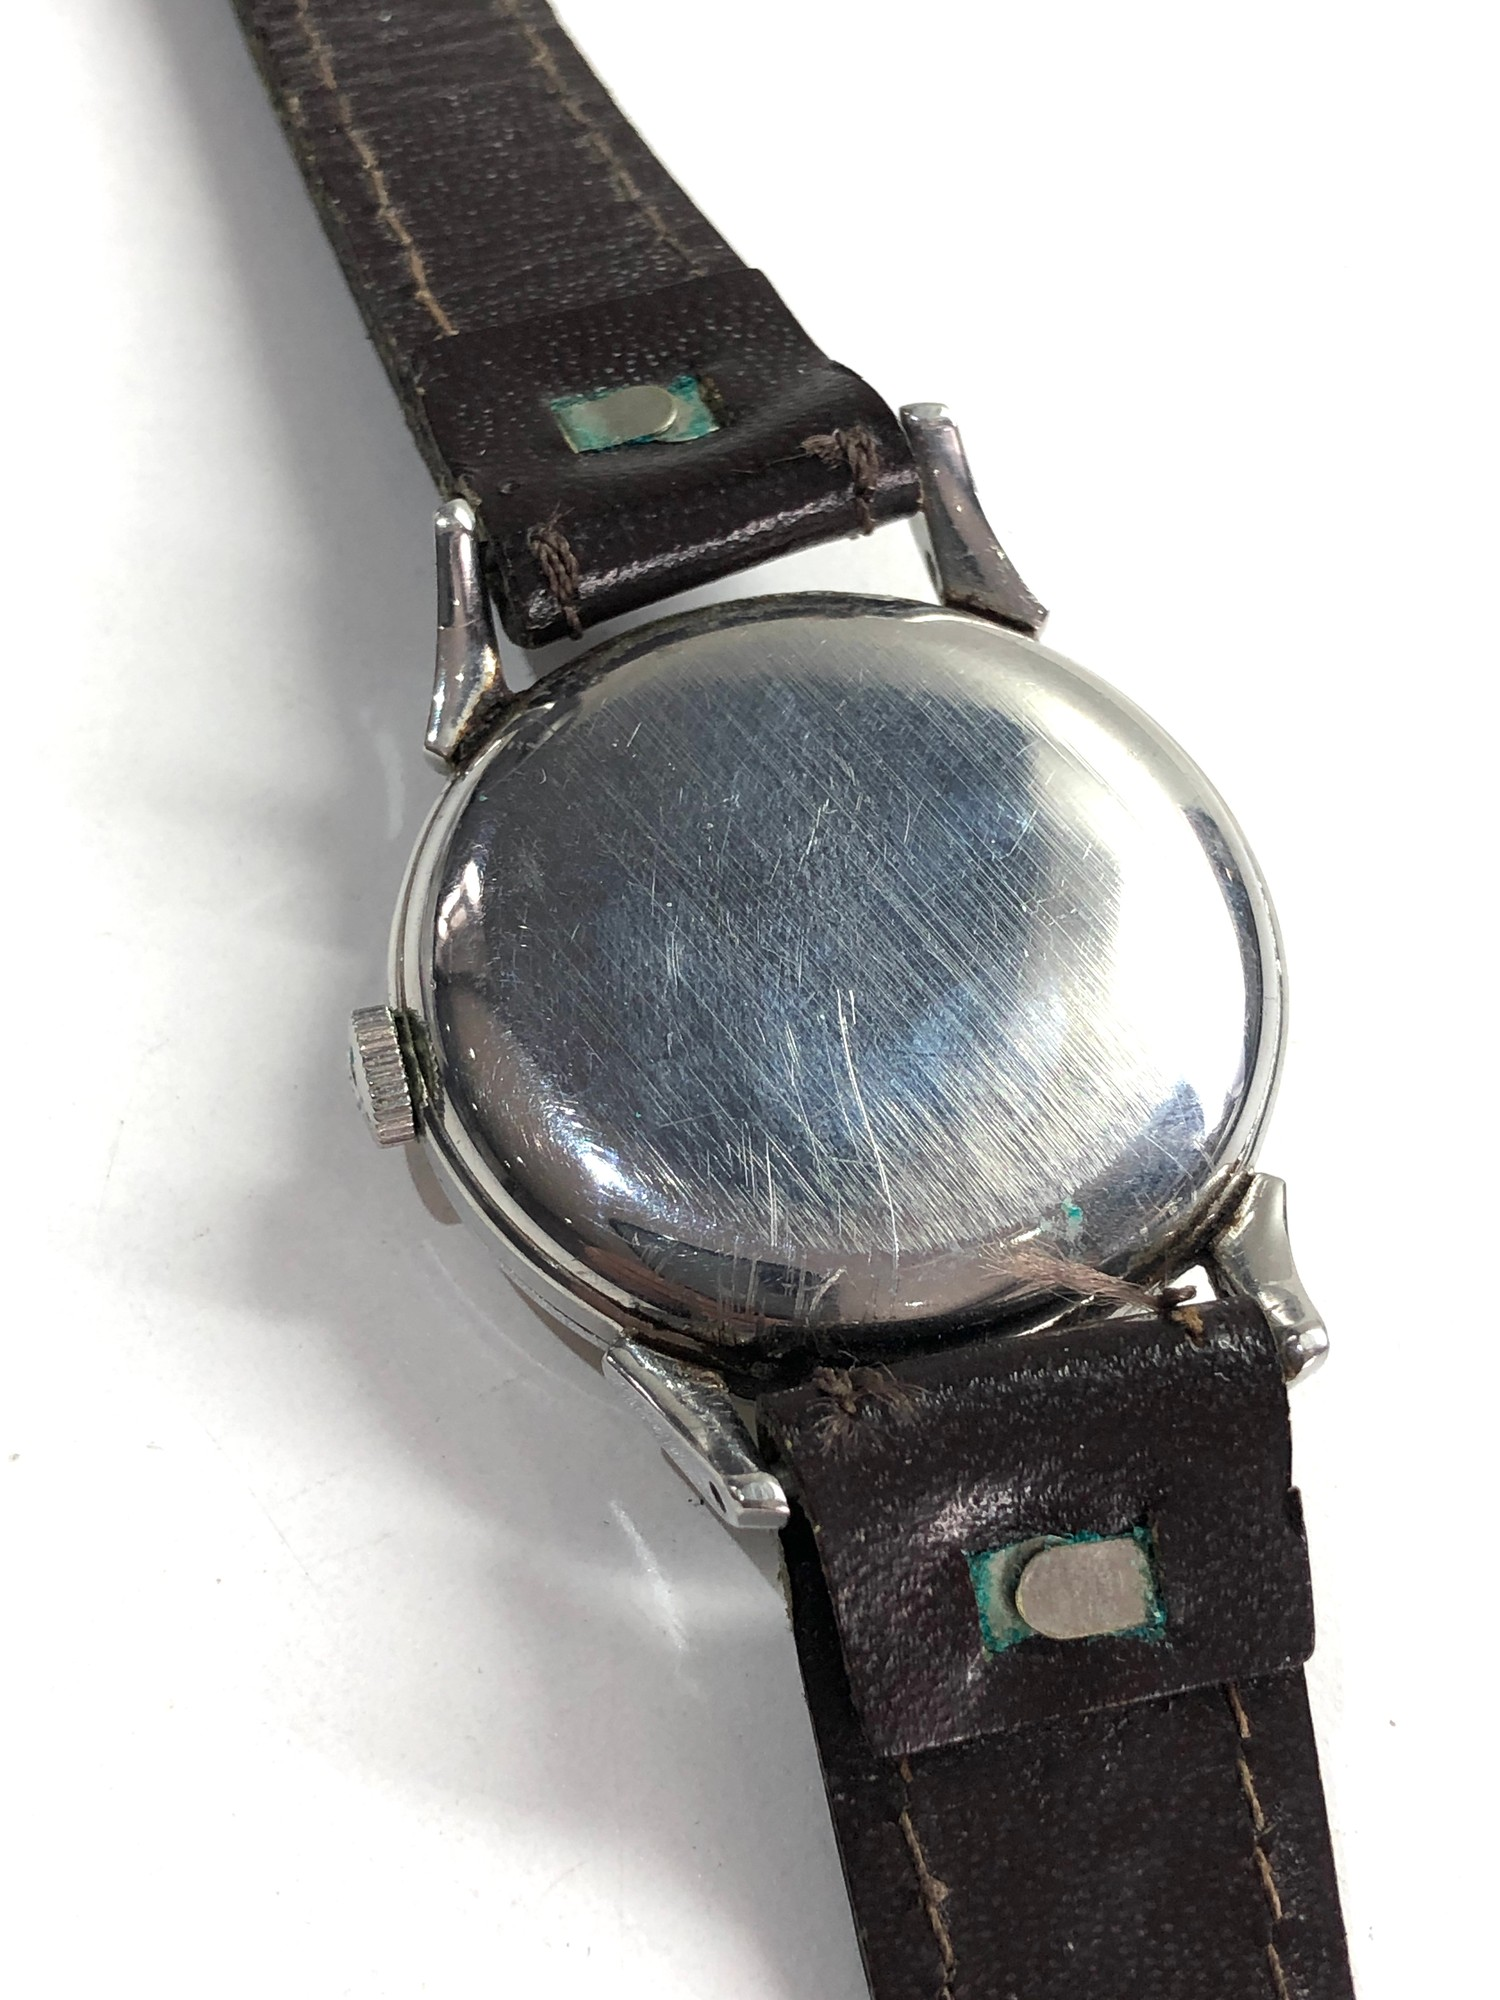 Vintage gents omega wristwatch hand wind in working order but no warranty given - Image 2 of 4